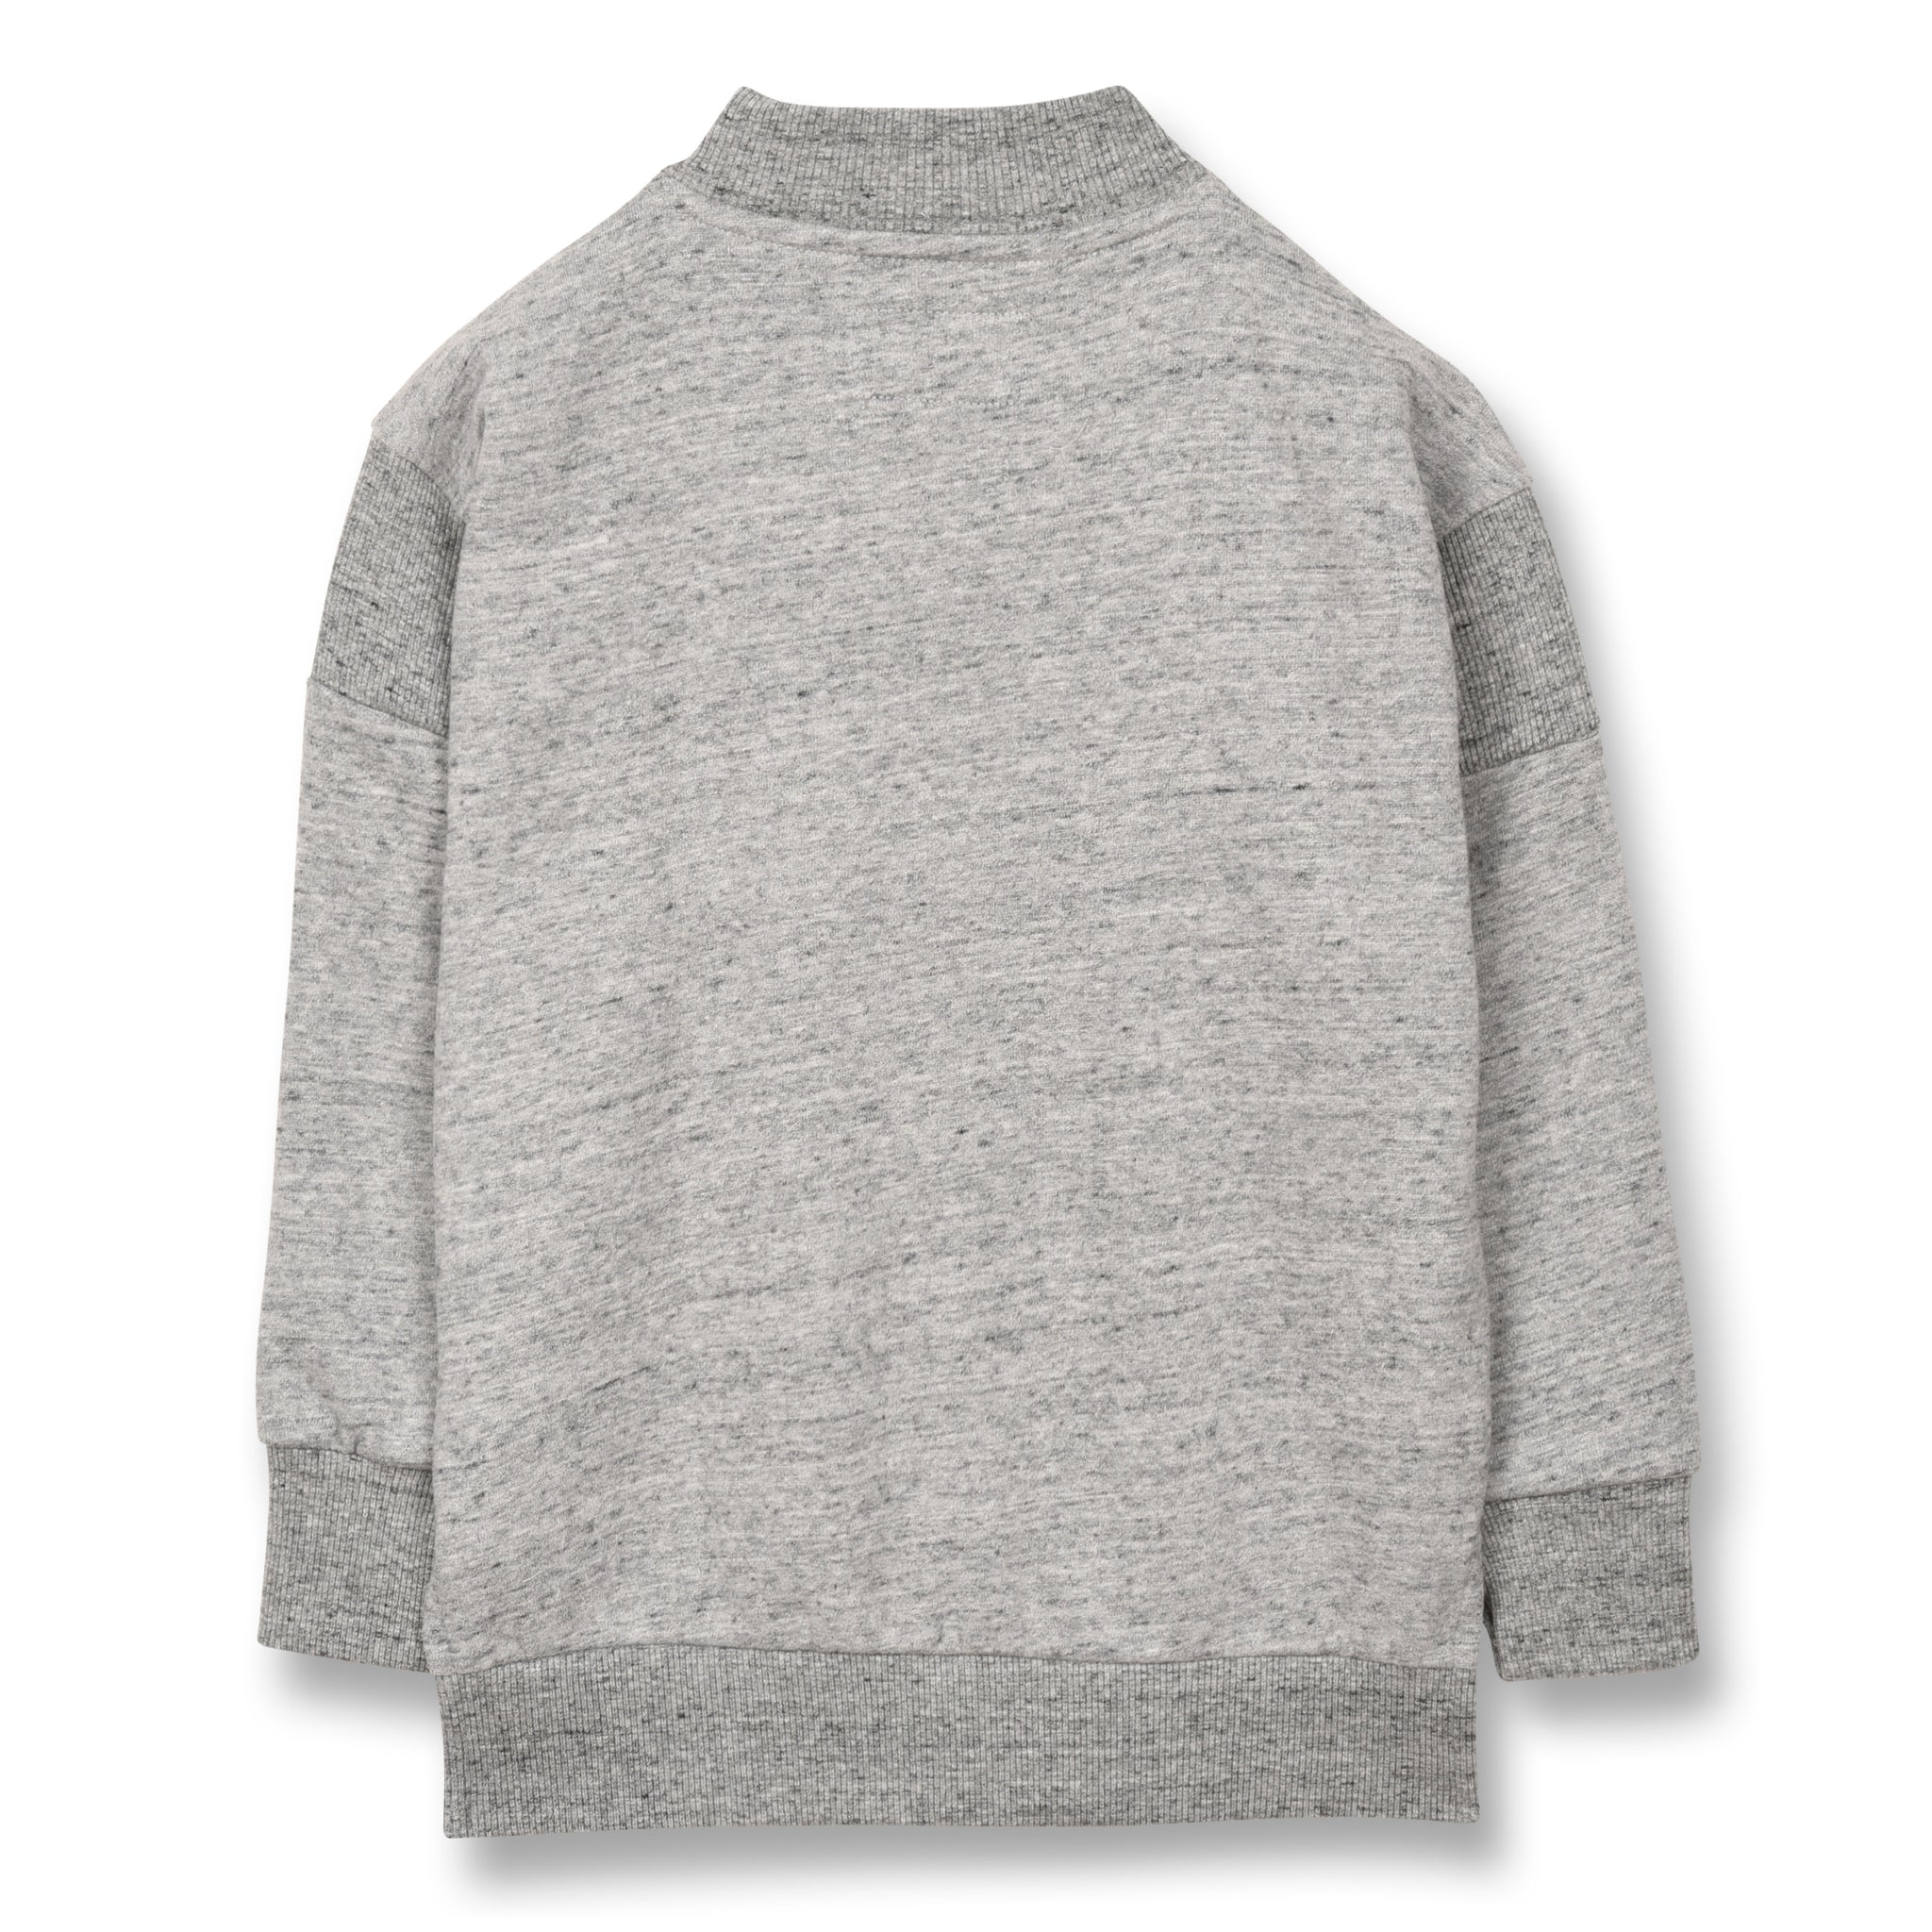 STANCE Heather Grey Skate Heart - Loose Fit Sweatshirt 2